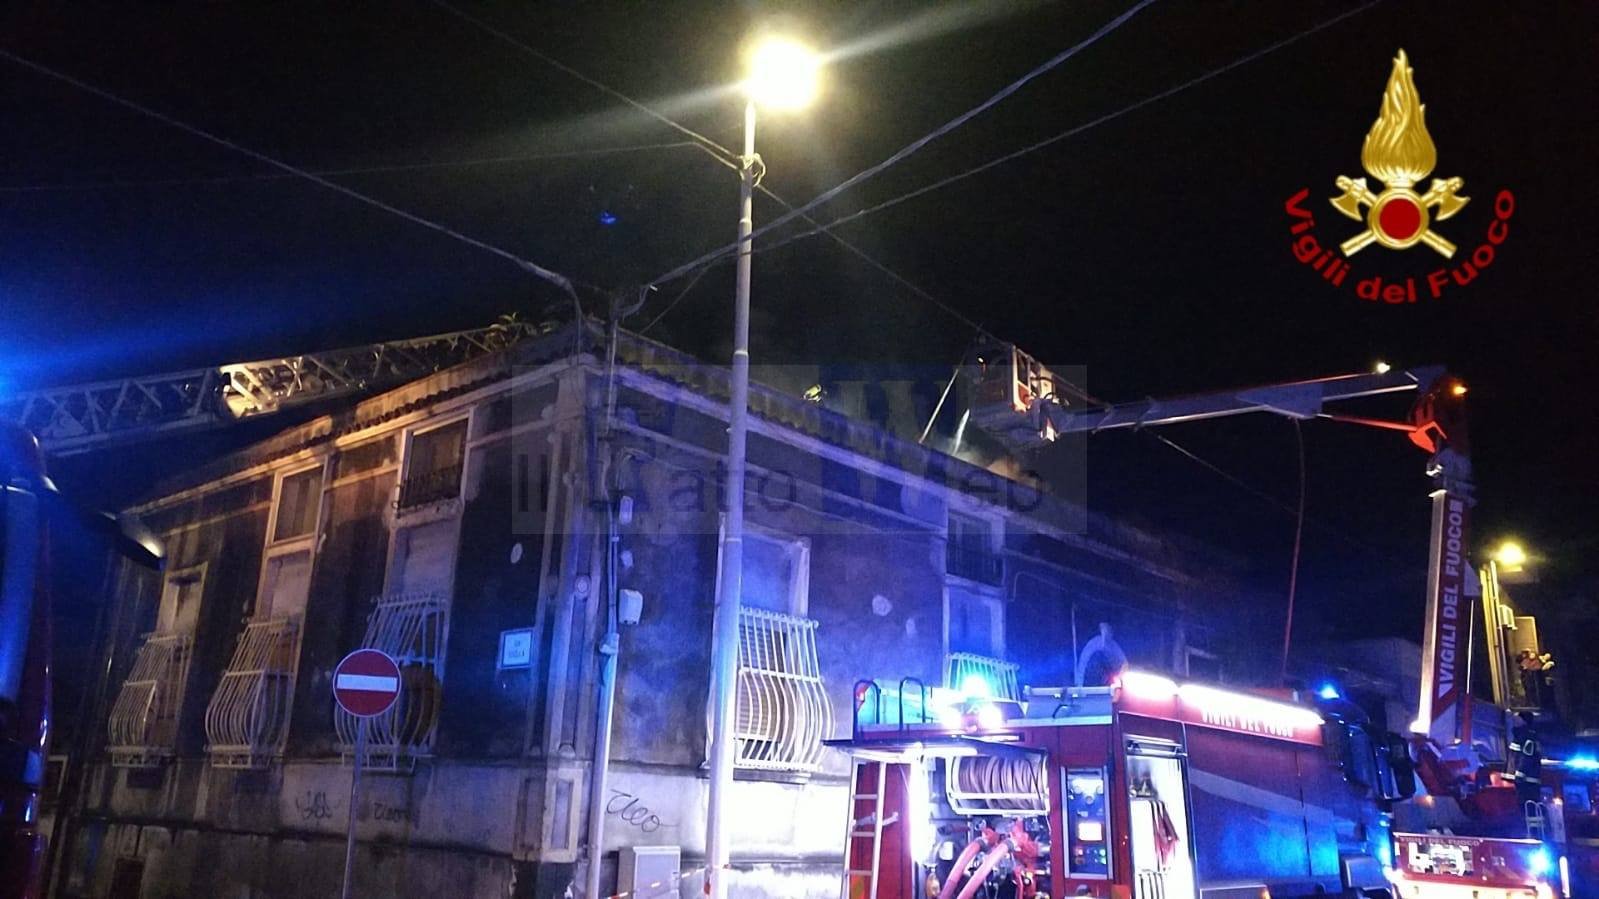 Vasto incendio in uno stabile di via Merlino